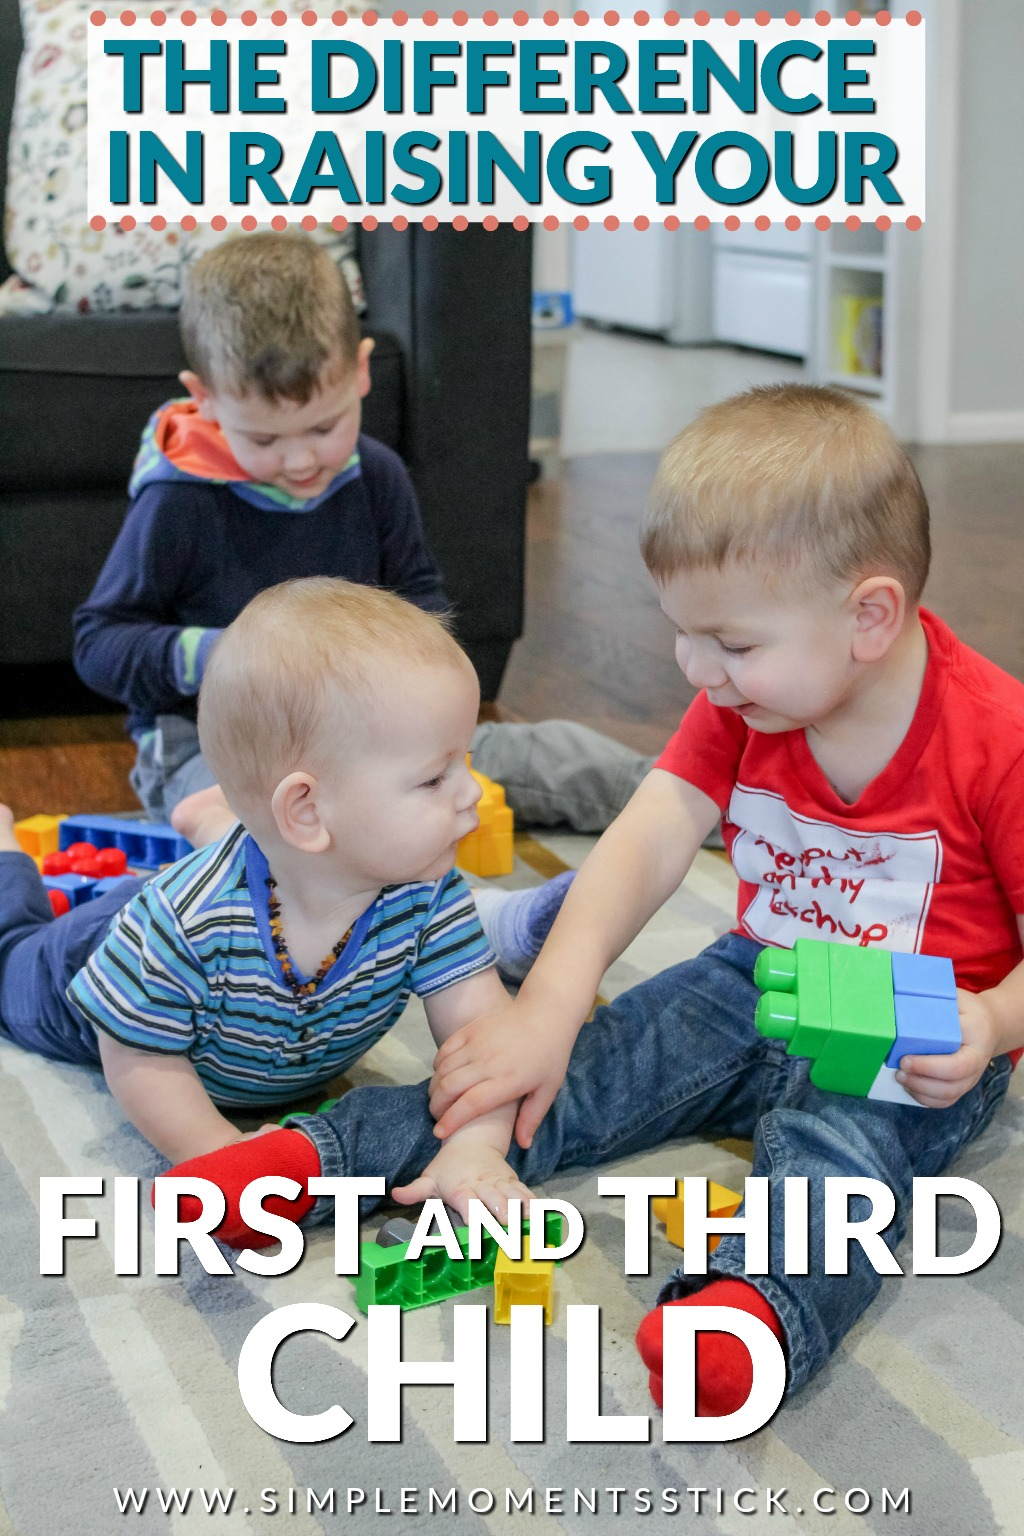 Difference in raising first and third child